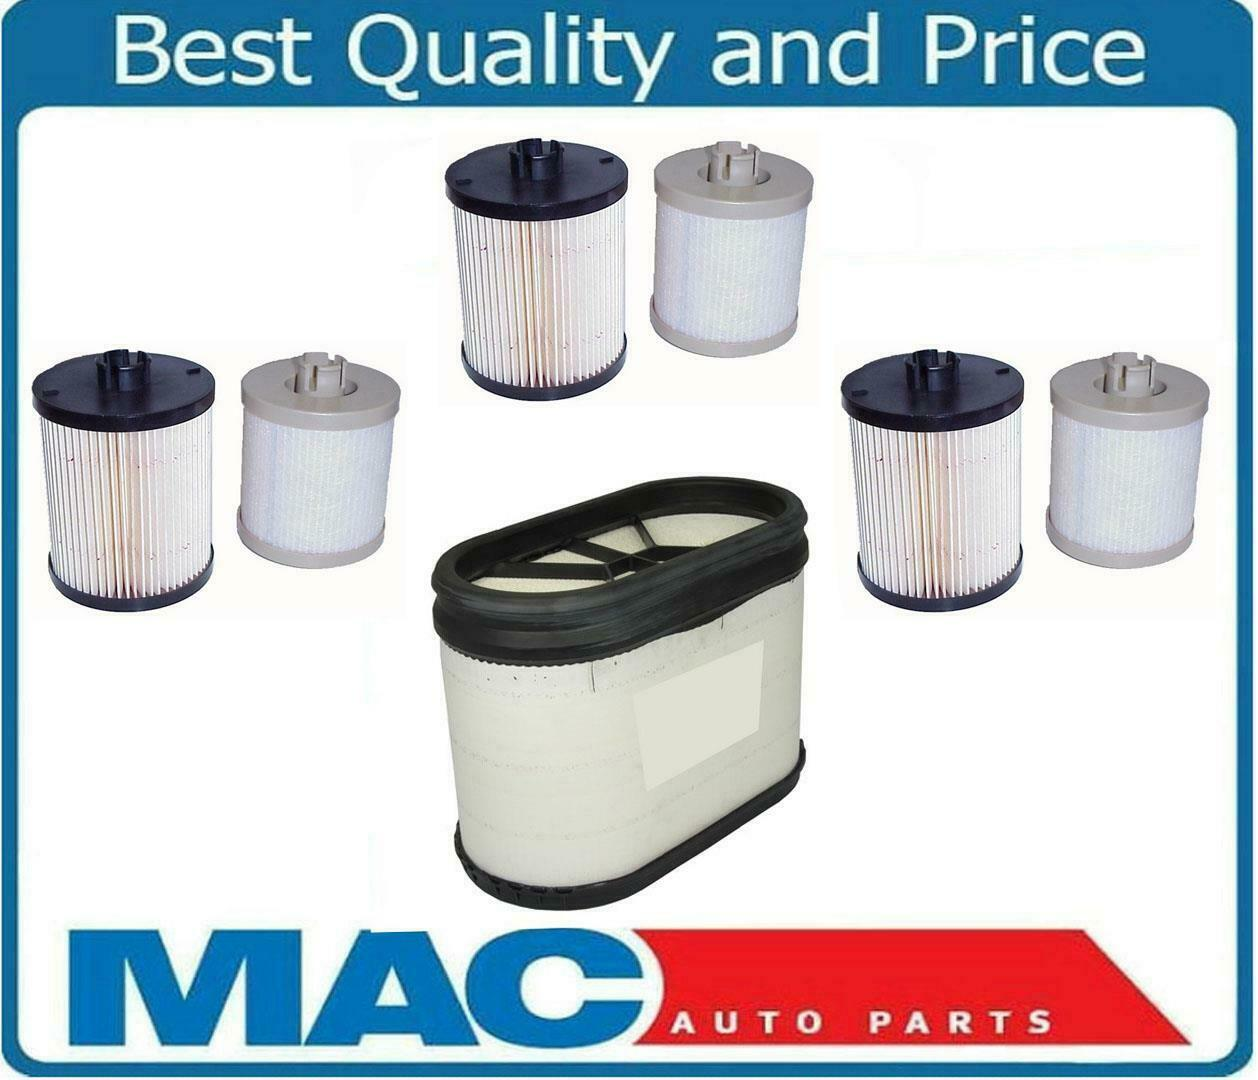 F250 F350 F450 F550 64l 3 Fuel Water Separator Coalescer Cartidge 2011 Ford F 250 Filter Cap Air 1 Of 1free Shipping